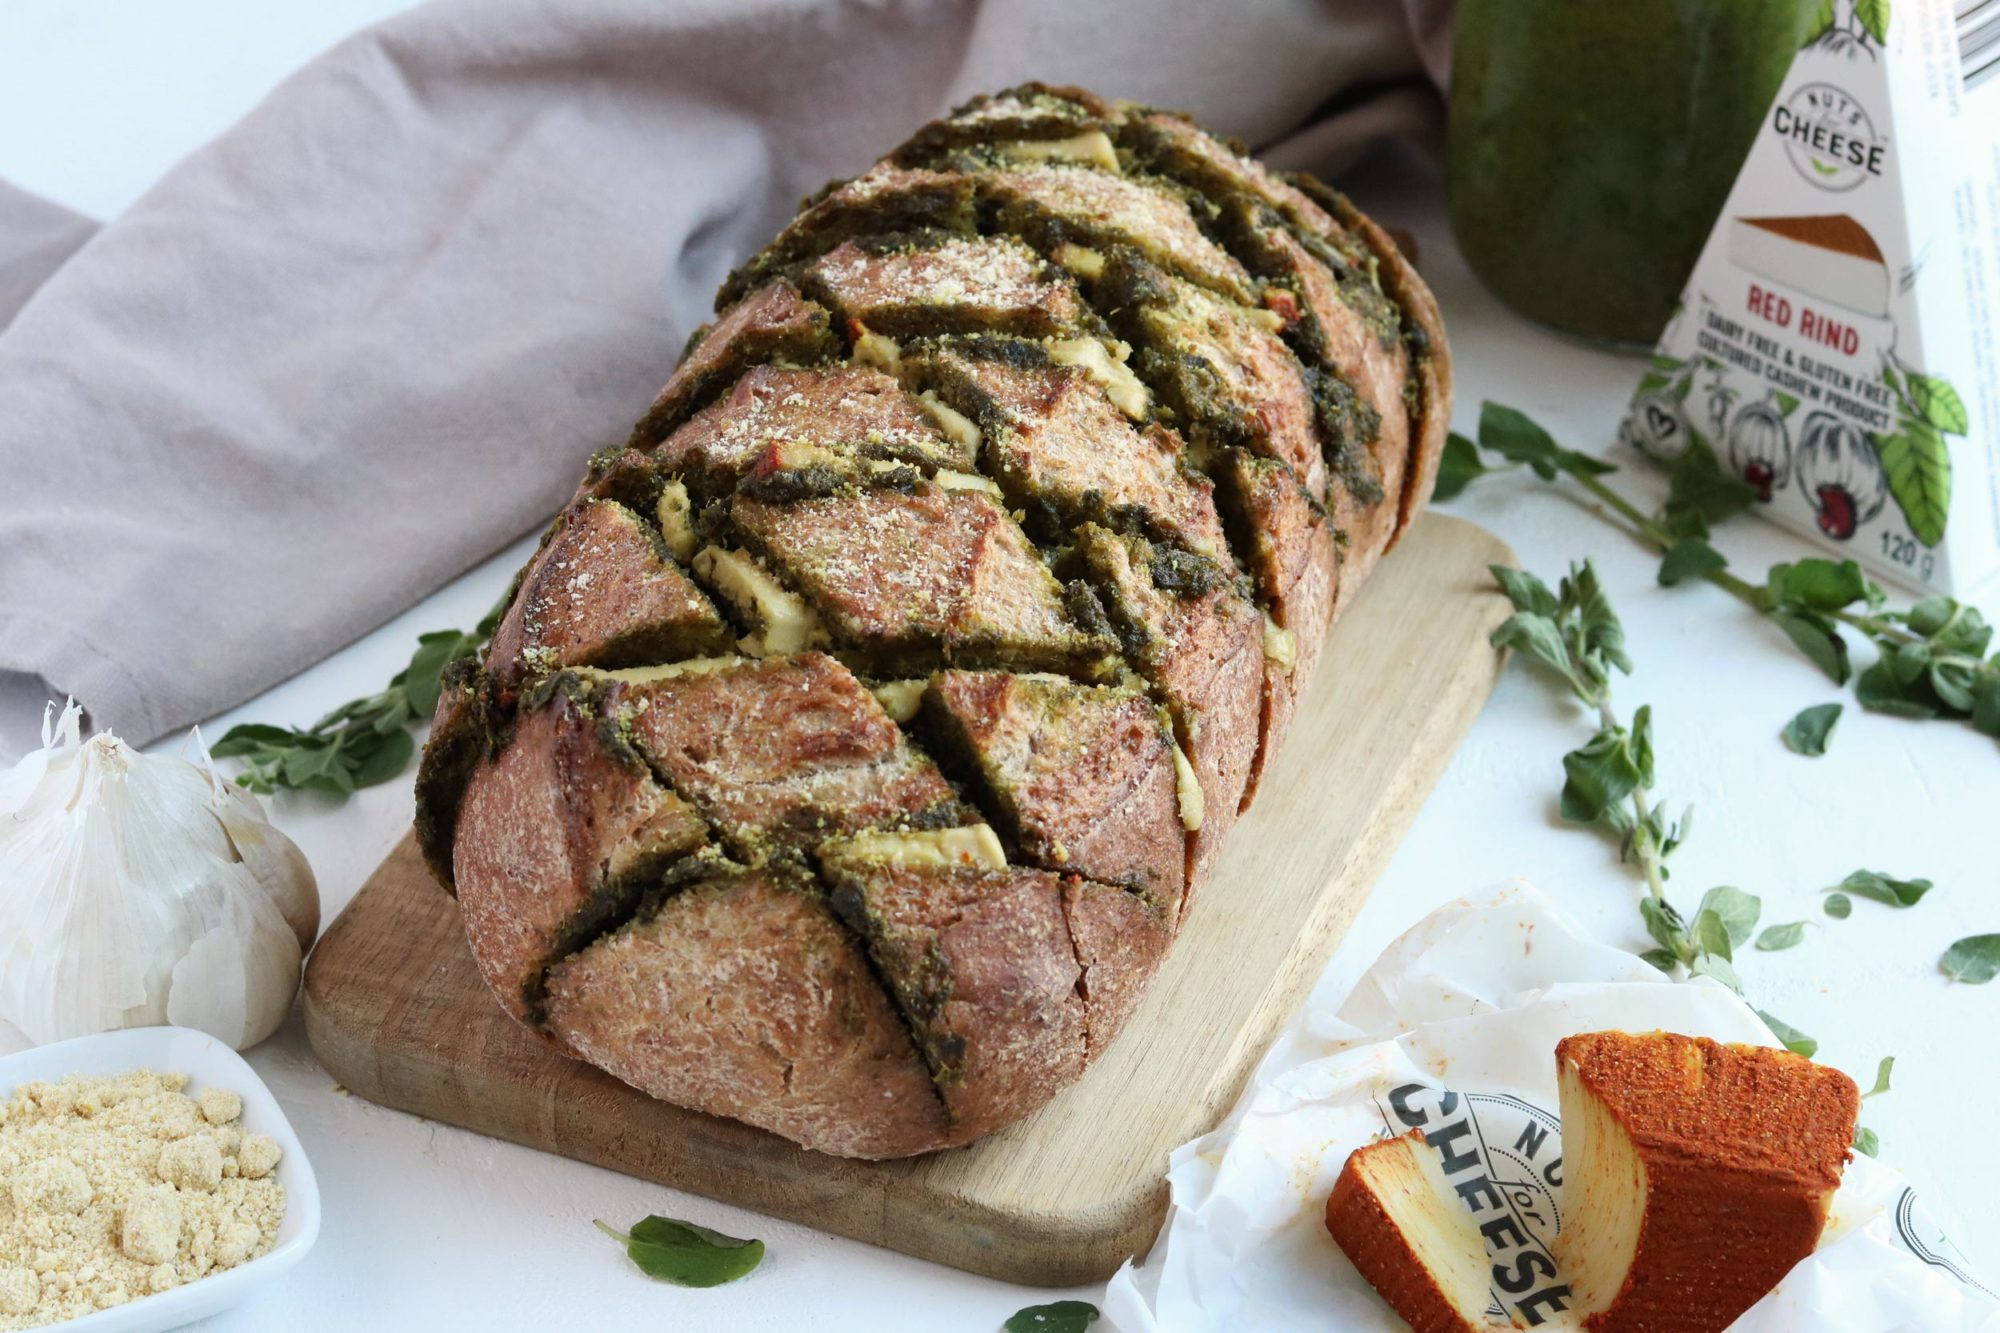 Nuts For Cheese Red Rind and Pesto Pull Apart Bread